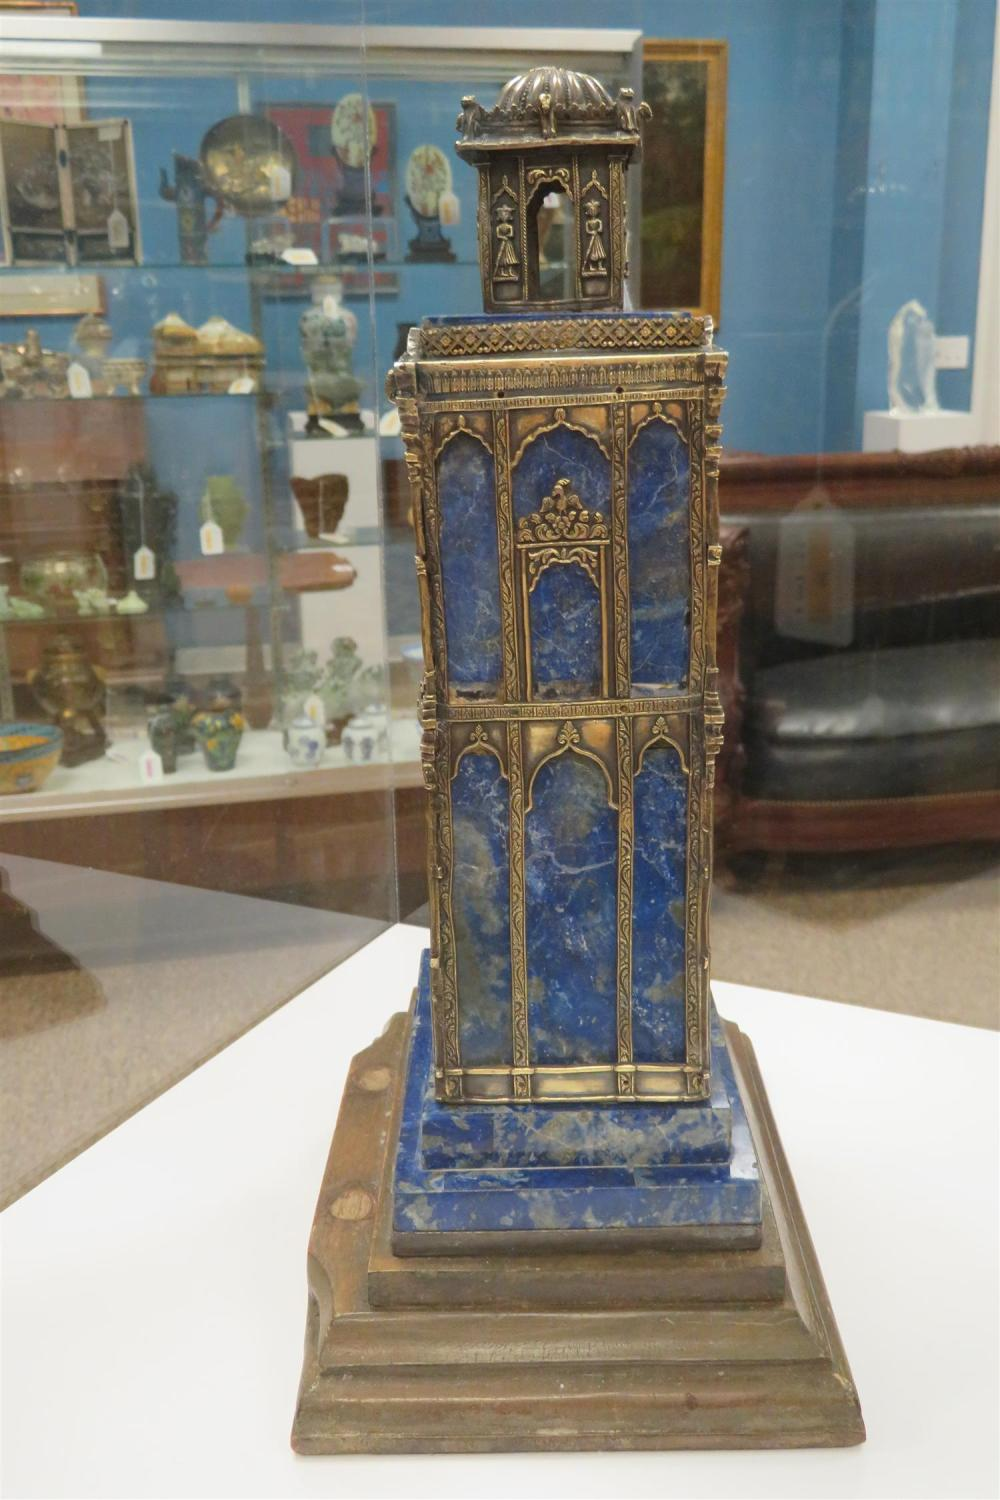 Viennese silver-mounted lapis architectural element